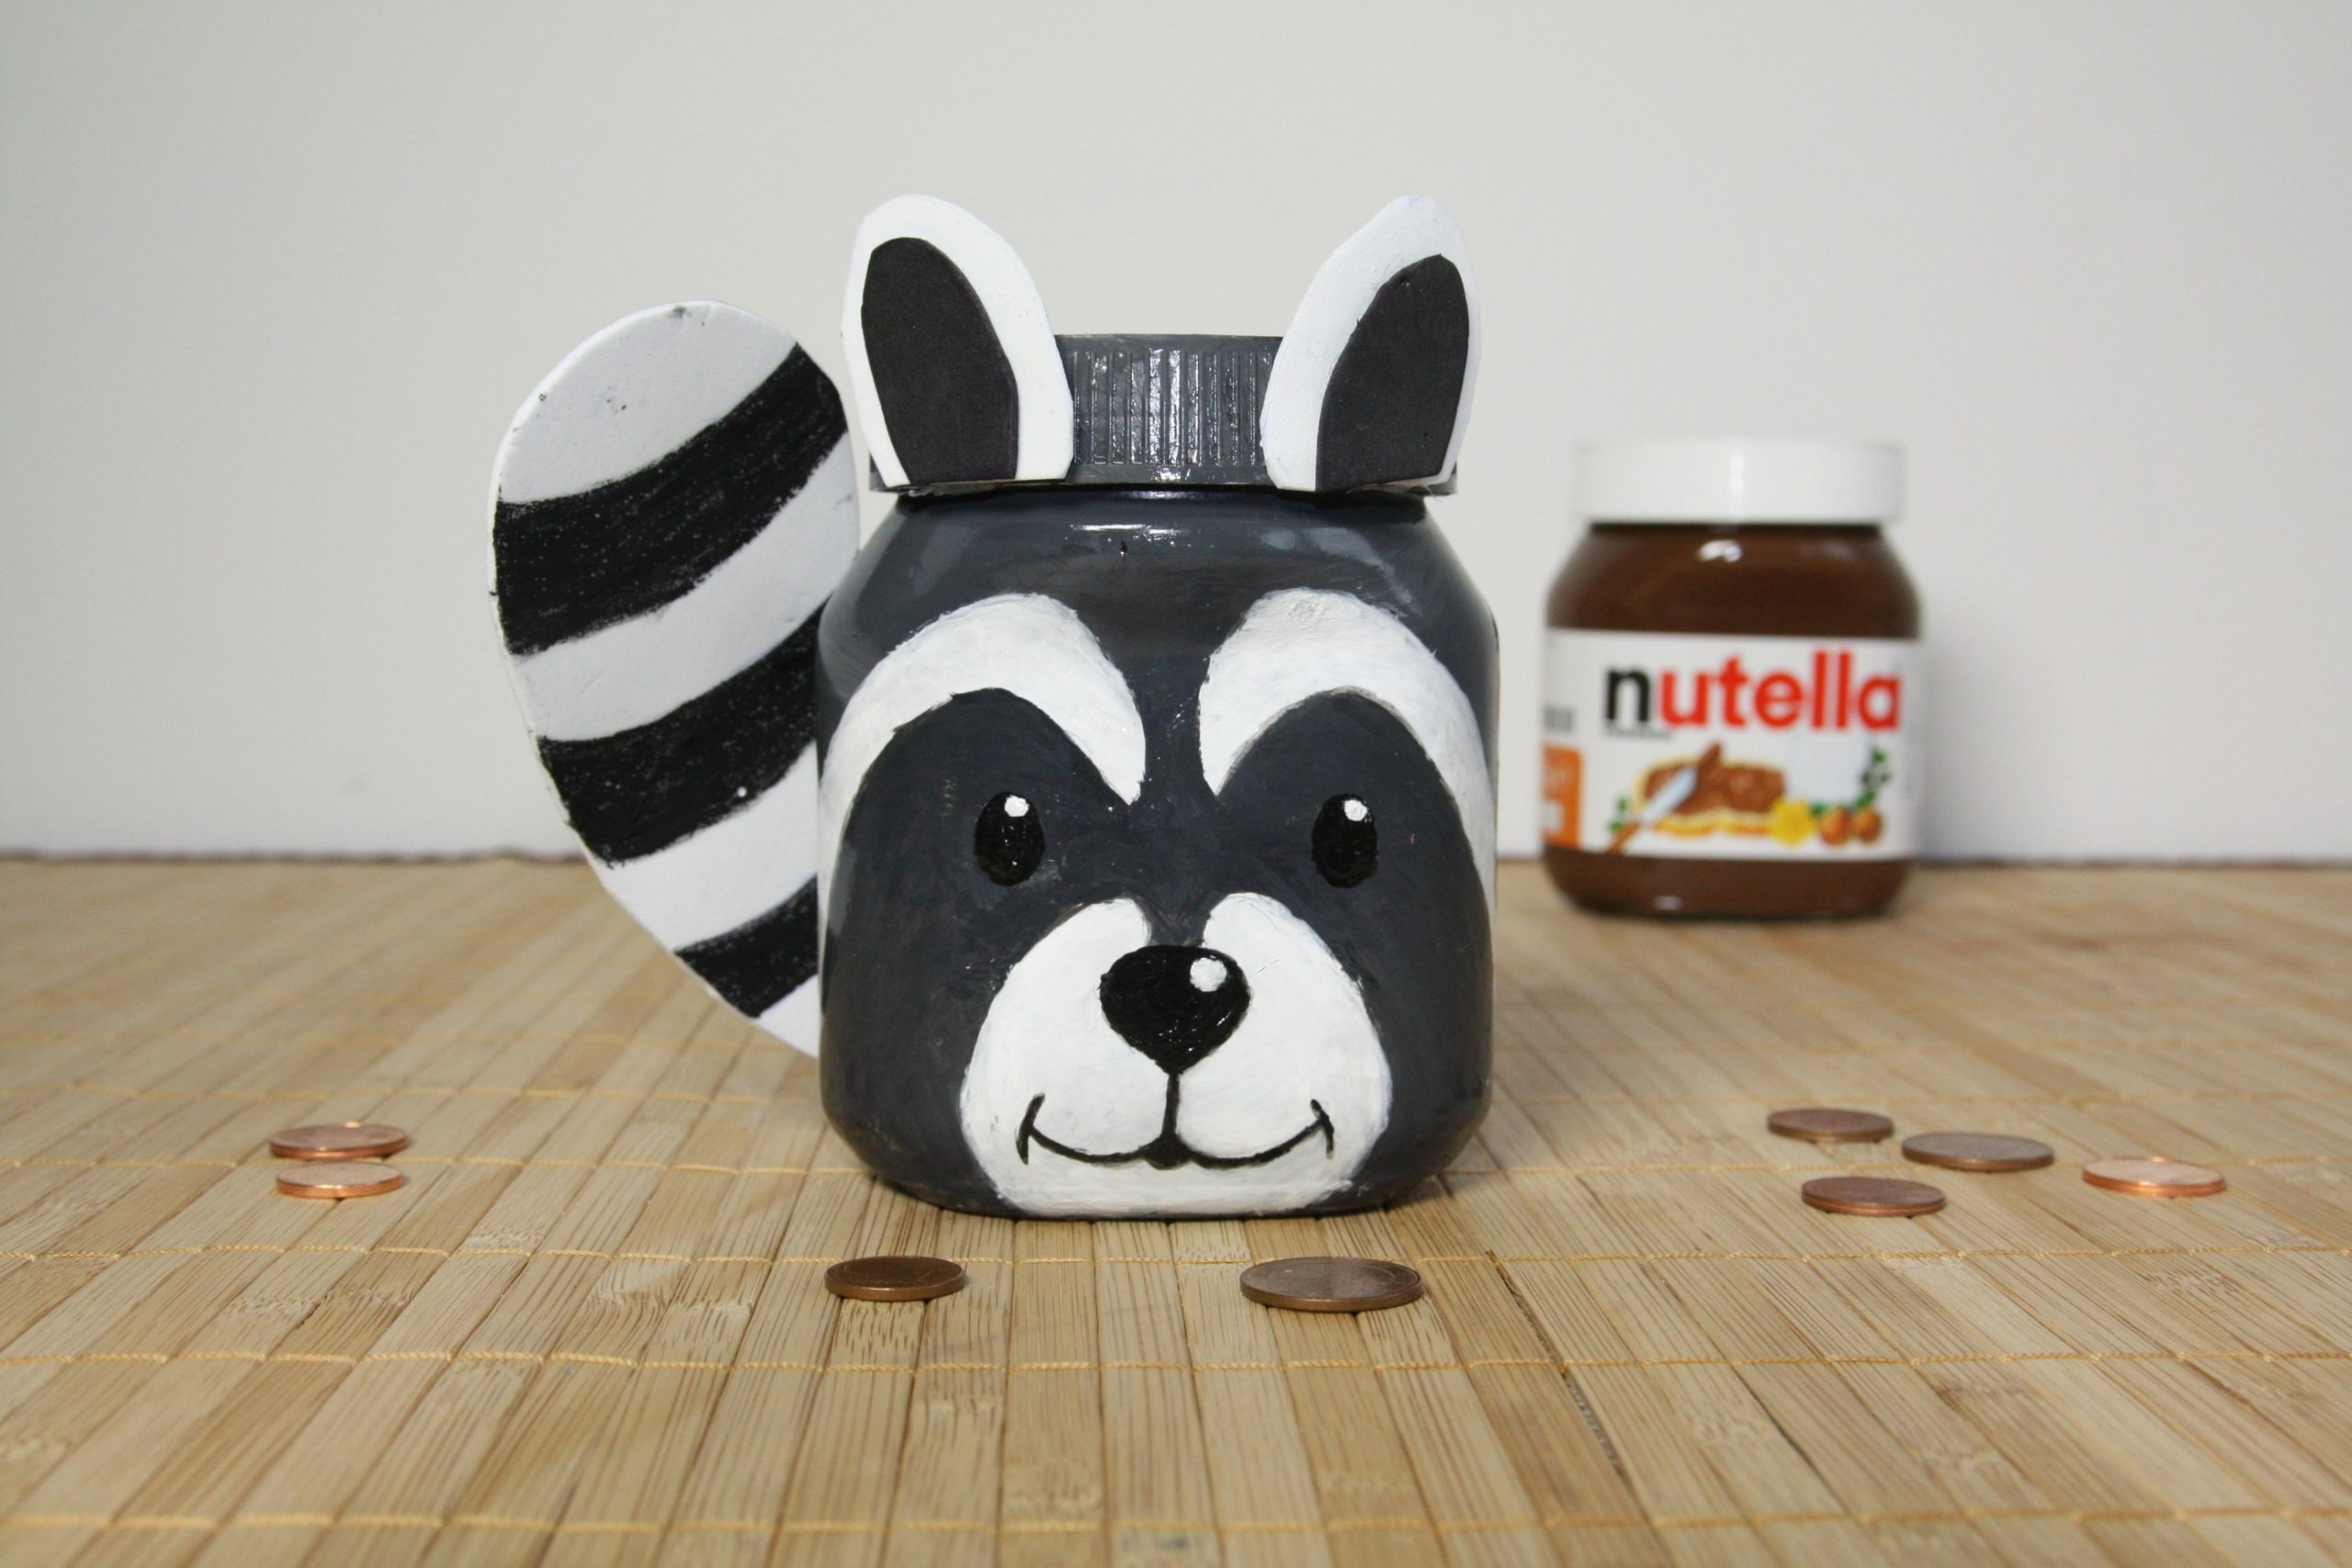 Upcycling Ideen Kinder Nutellagläser – 6 Coole Upcycling-ideen - Diy-family